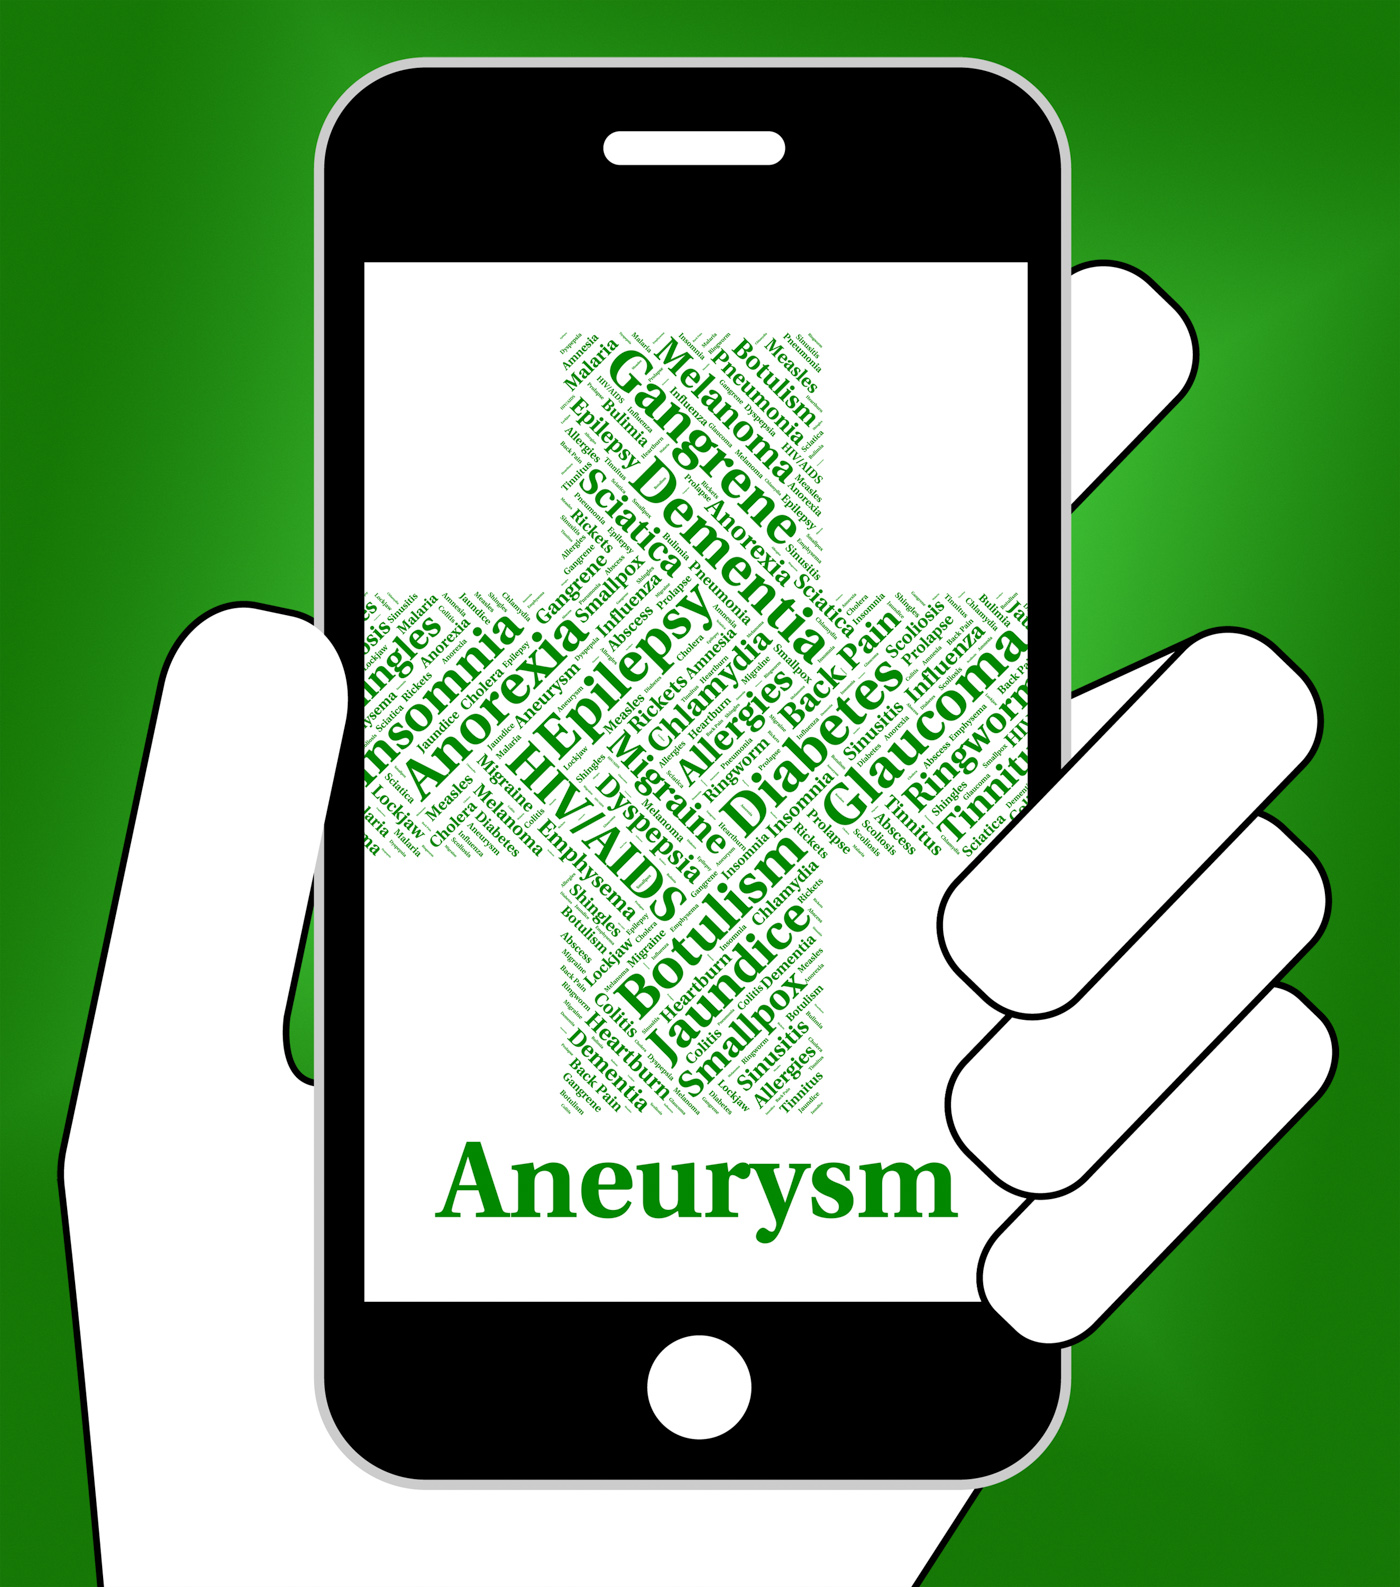 Aneurysm Illness Indicates Artery Wall And Ailment, Affliction, Sick, Poorhealth, Malady, HQ Photo